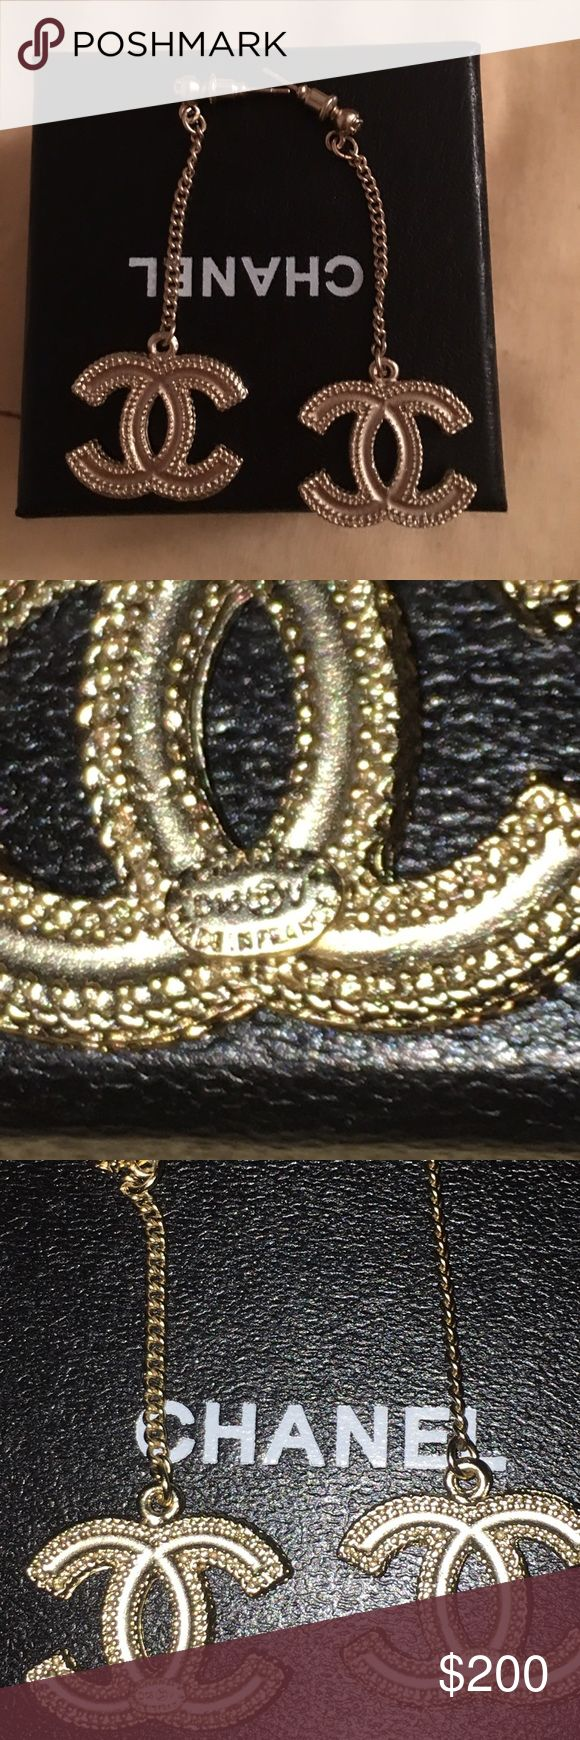 Authentic Chanel Earring Authentic Chanel Earring in great condition. Have stamp on the back. Made in Frace. It comes in box but no dust bag . Thanks for looking!price is firm CHANEL Jewelry Earrings